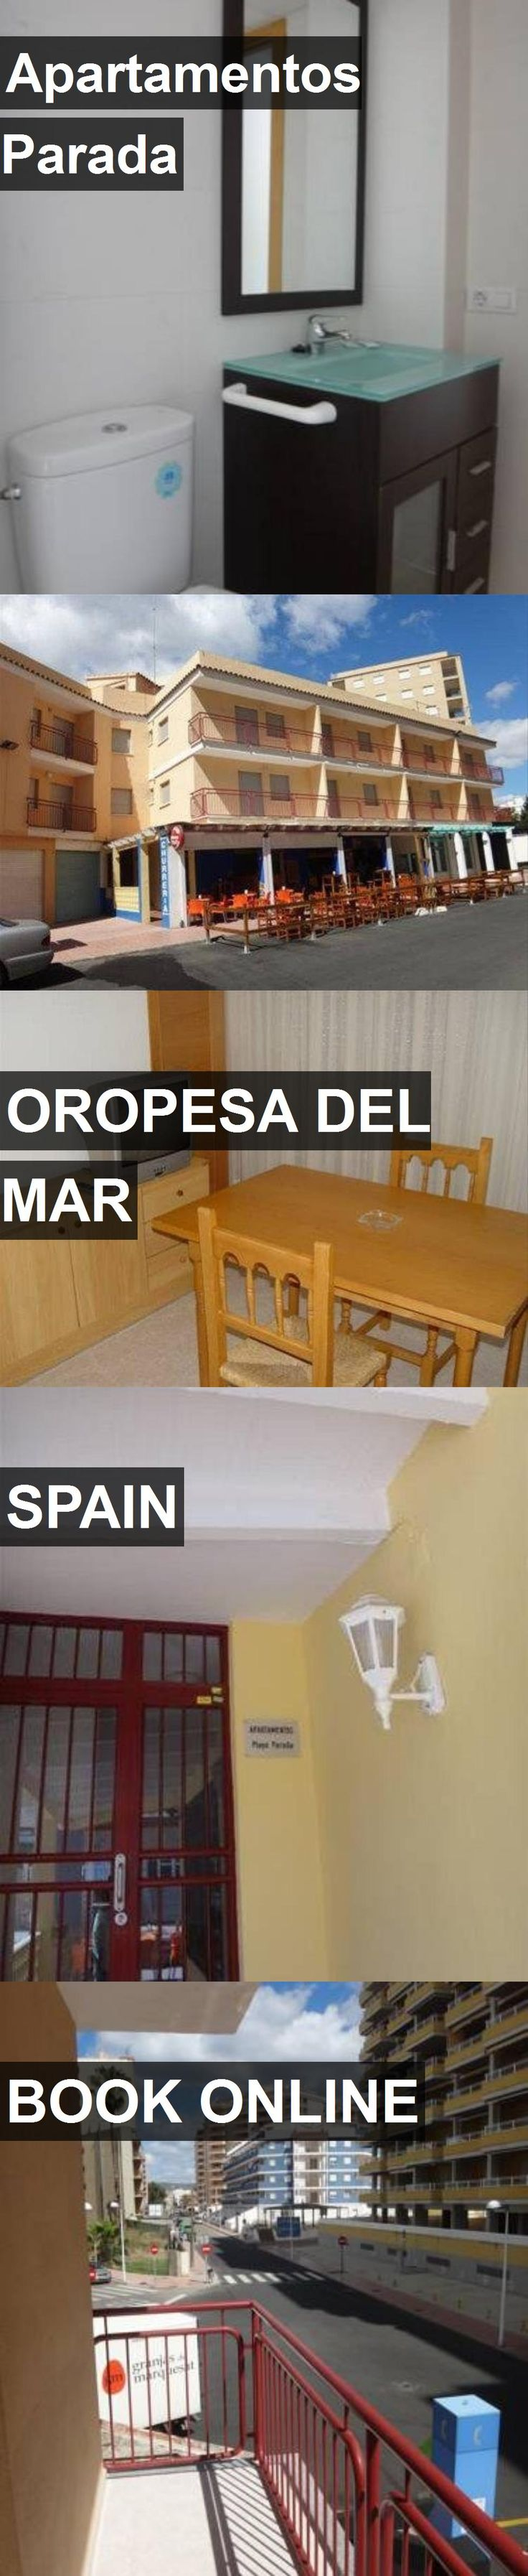 Hotel Apartamentos Parada in Oropesa del Mar, Spain. For more information, photos, reviews and best prices please follow the link. #Spain #OropesadelMar #travel #vacation #hotel